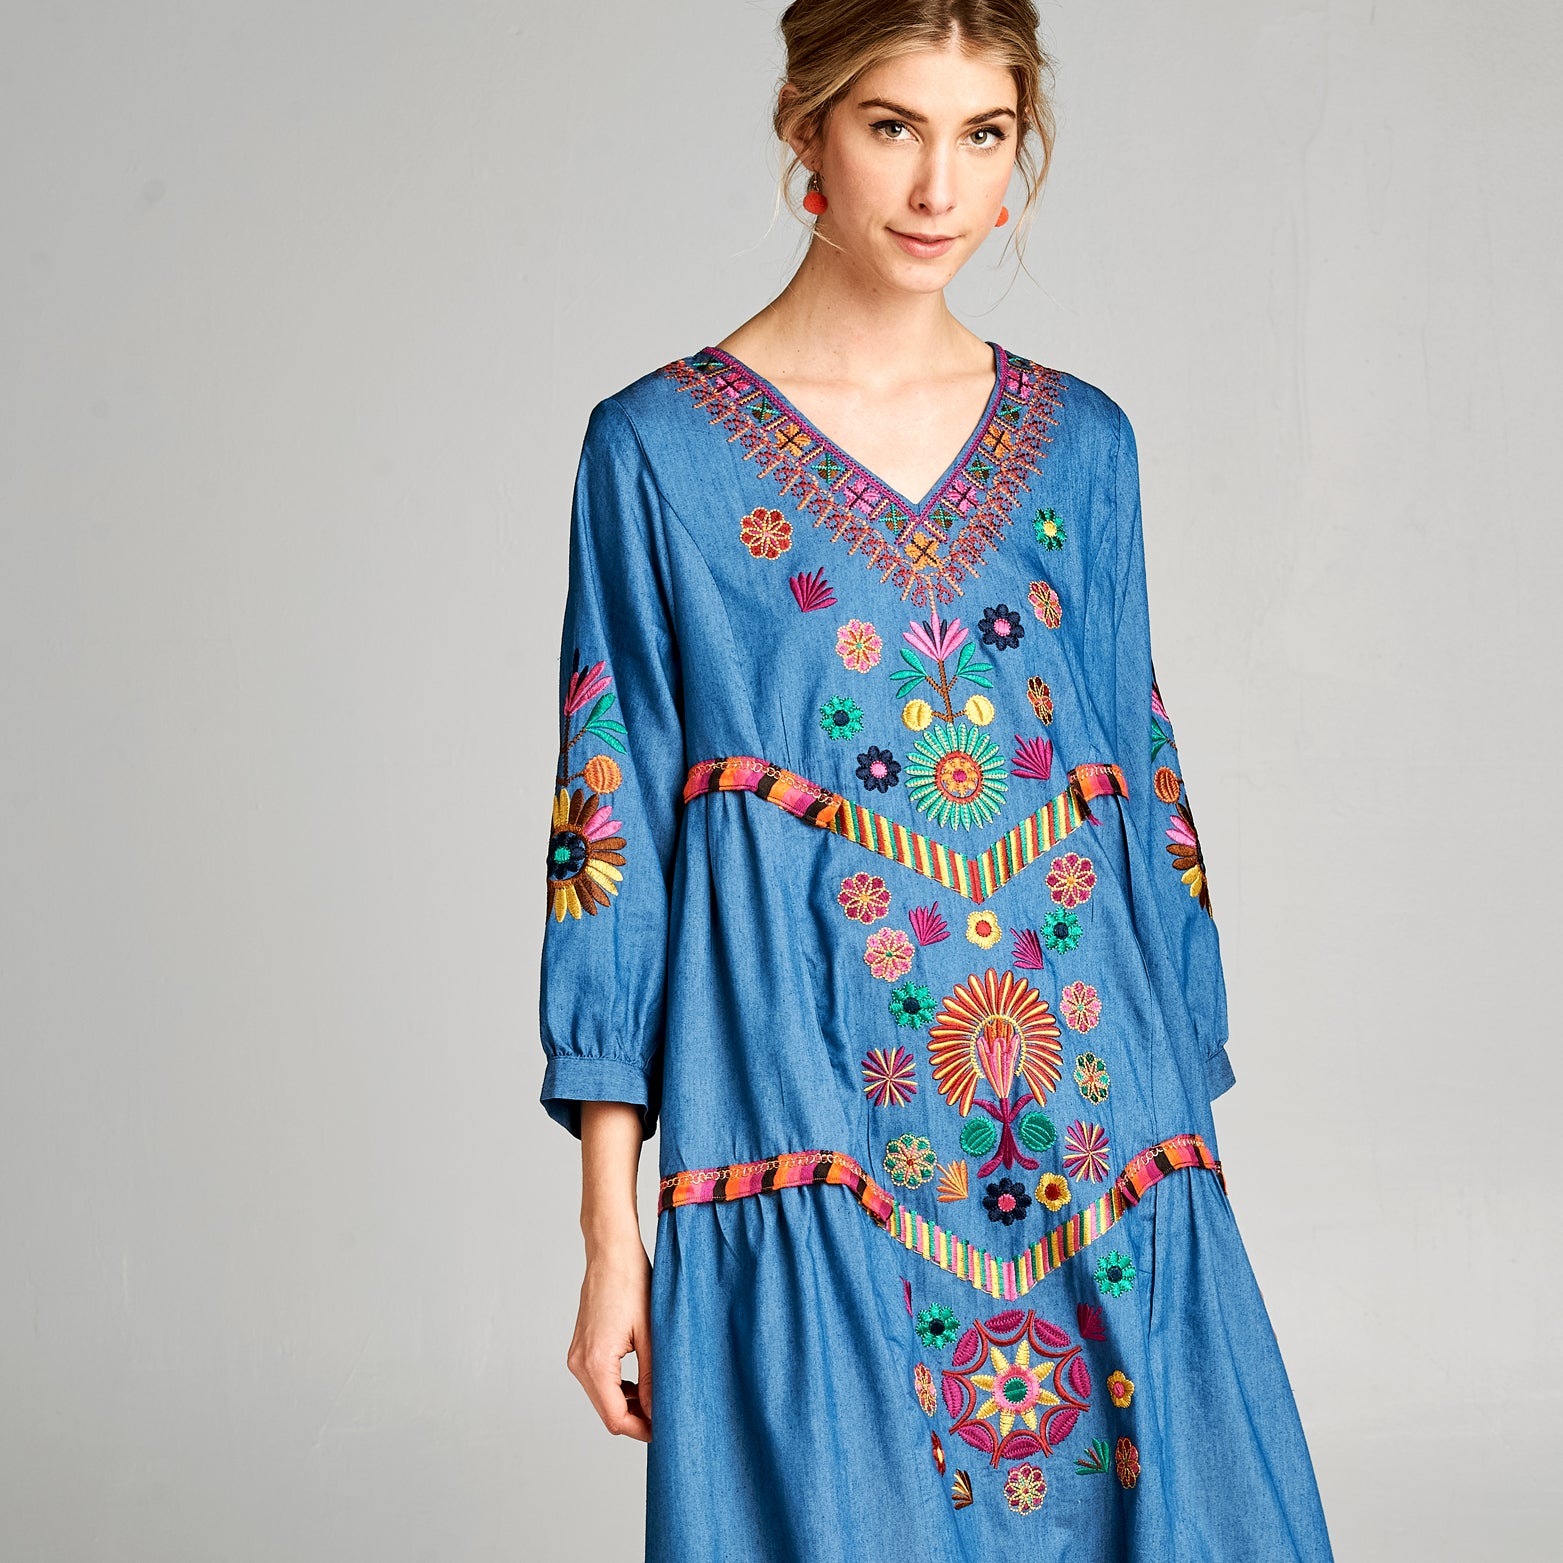 Floral Embroidered Maxi Dress - Love, Kuza